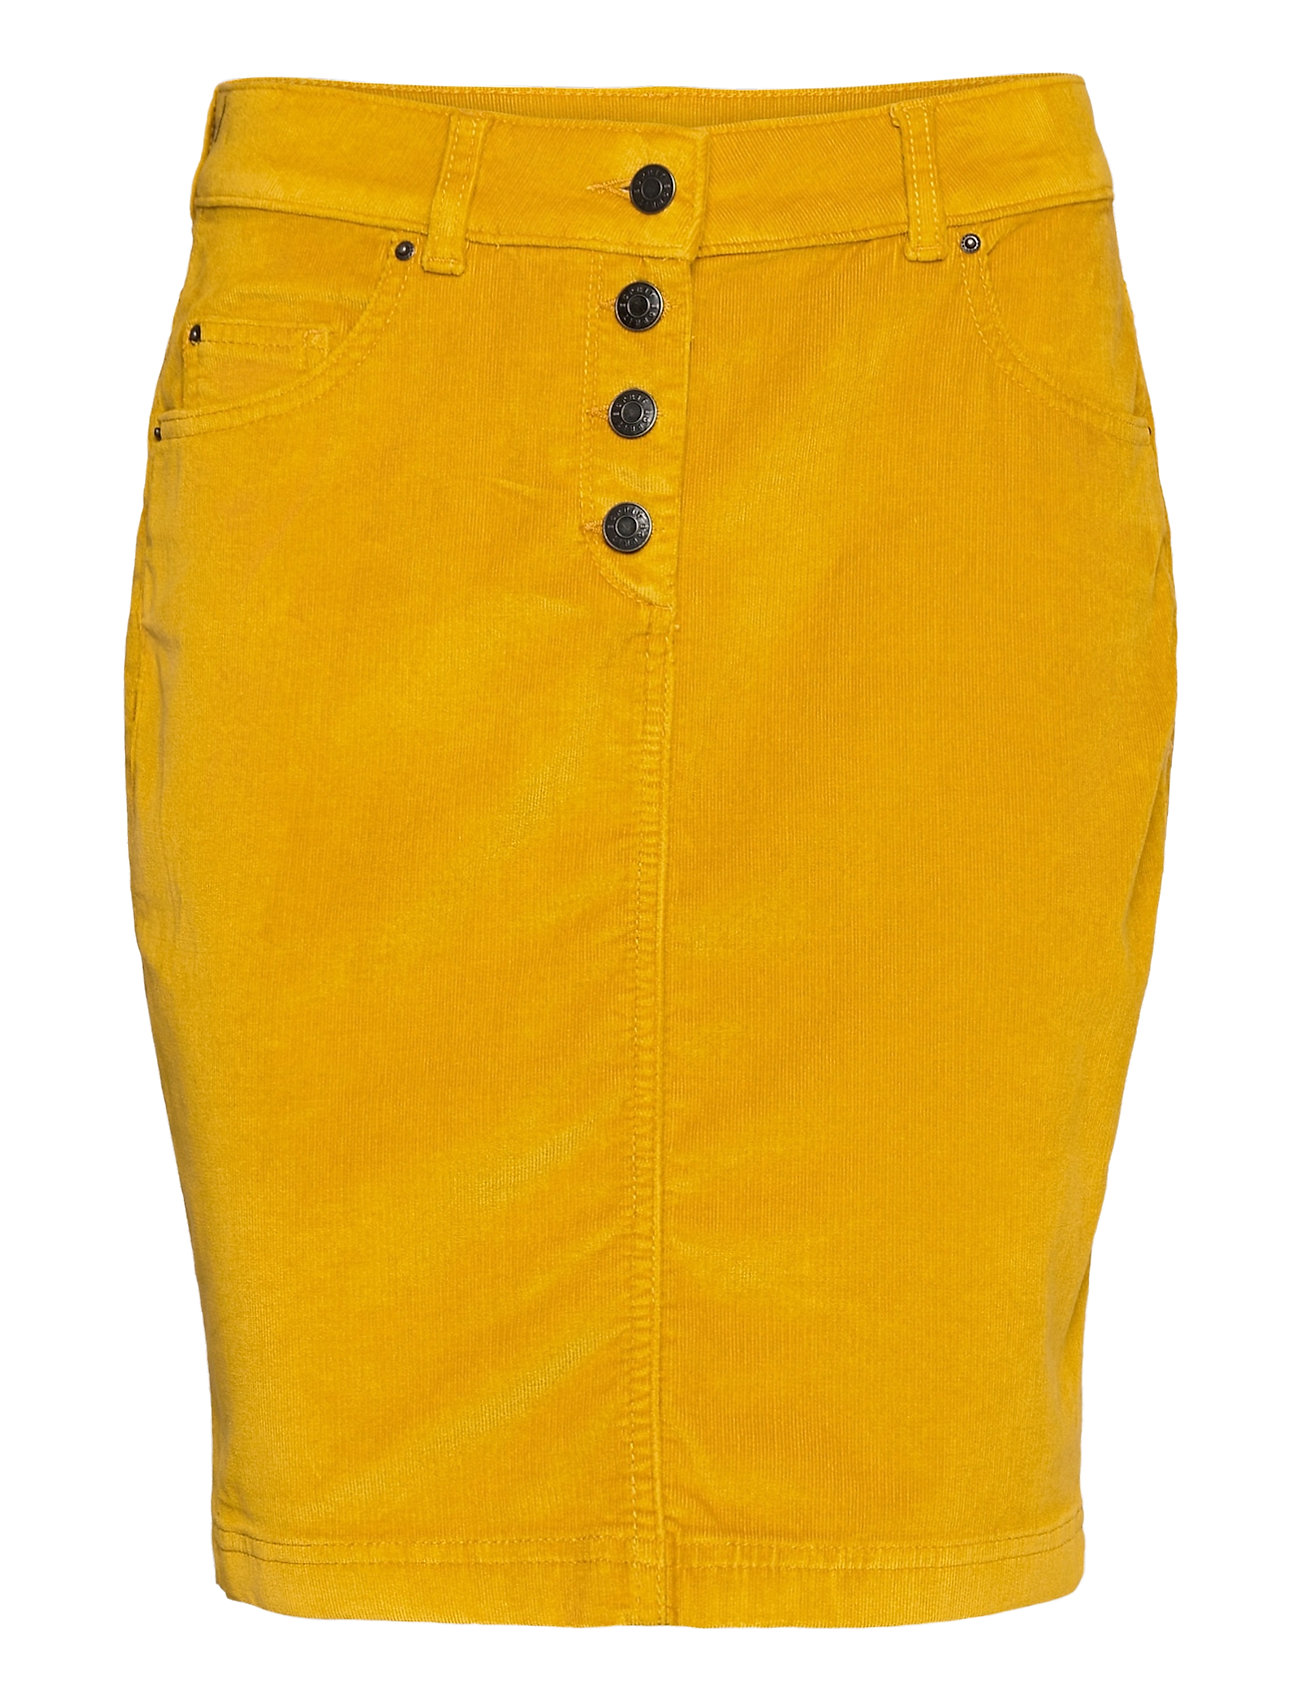 Image of Skirts Woven Kort Nederdel Gul Esprit Casual (3457715785)